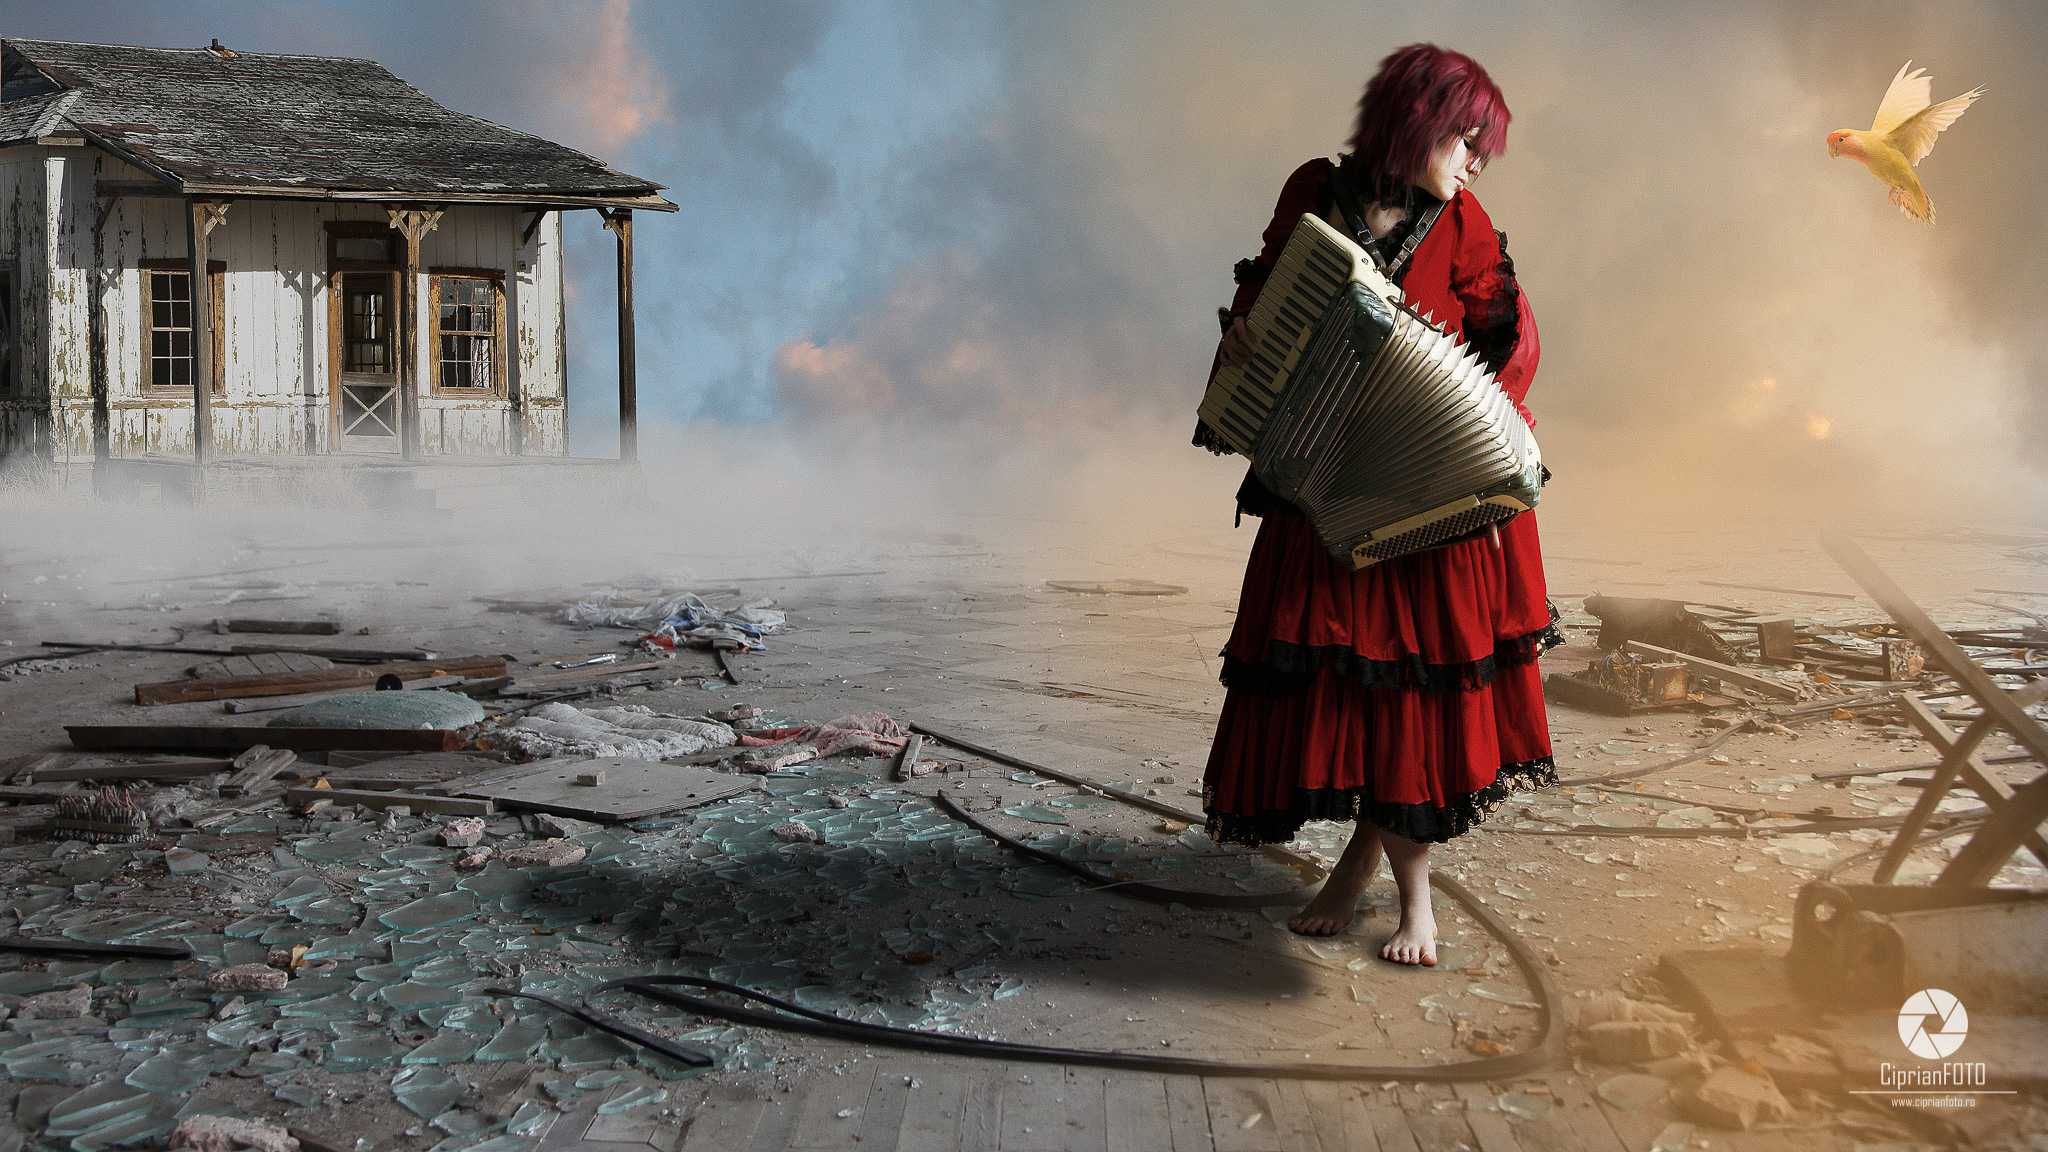 The_Girl_Playing_The_Accordion_Photoshop_Manipulation_Tutorial_CiprianFOTO